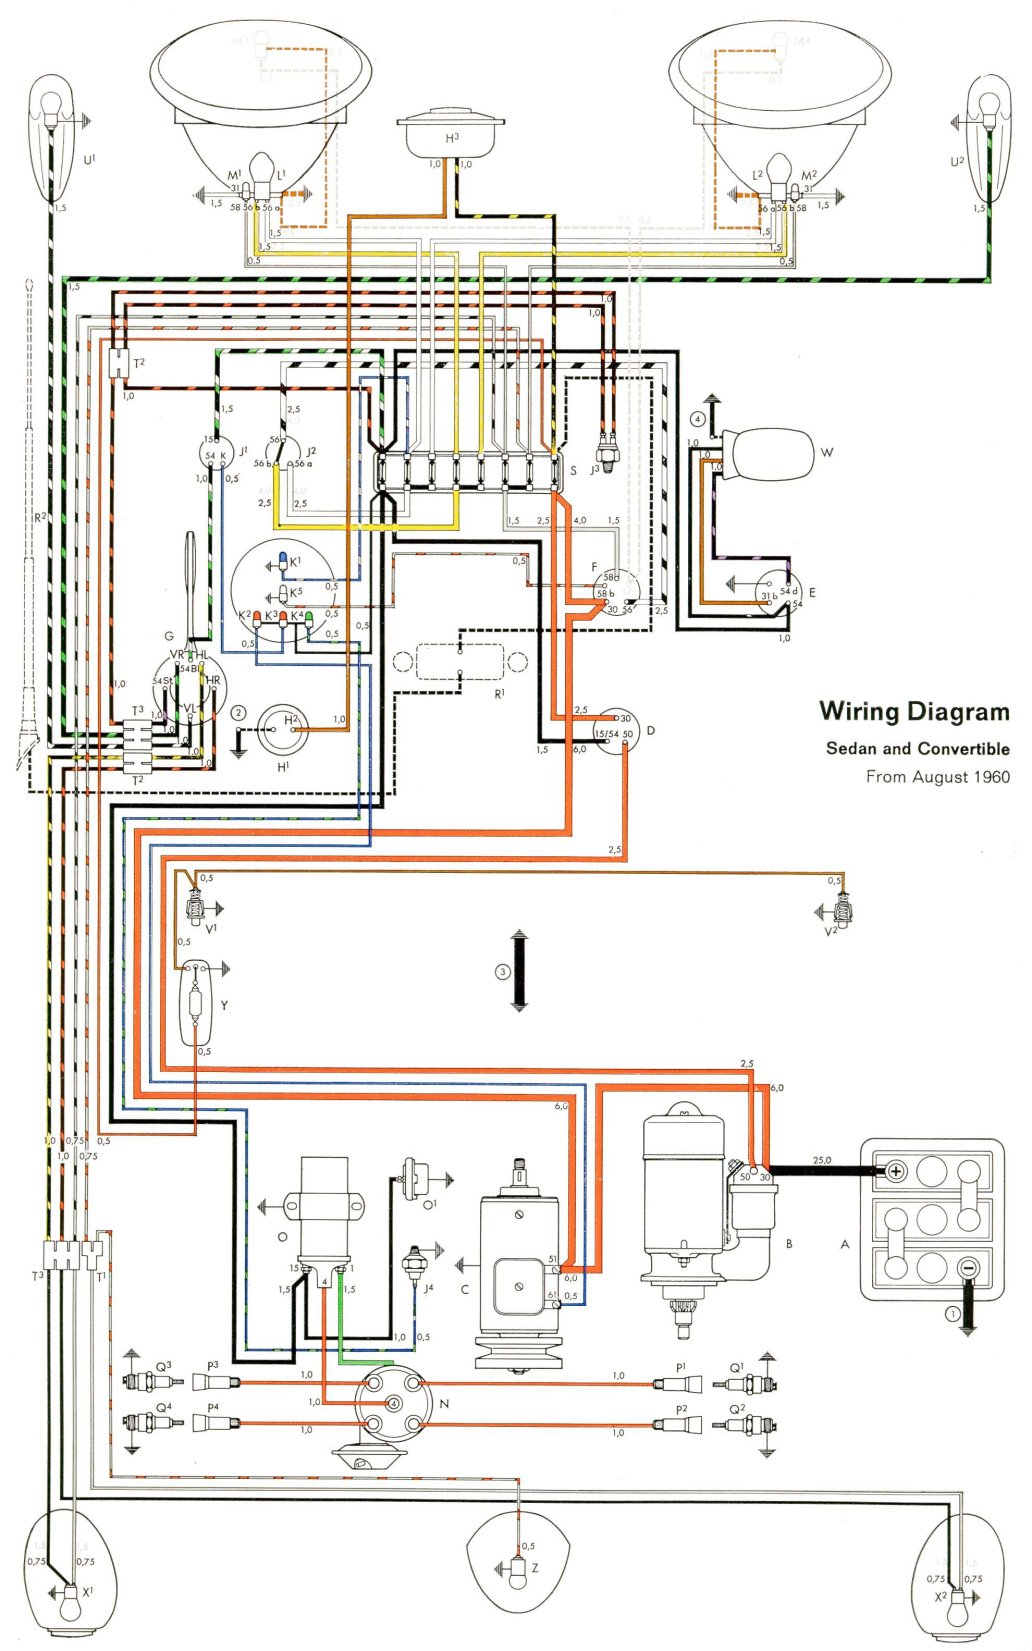 bug_61 1961 beetle wiring diagram thegoldenbug com 1973 vw super beetle wiring diagram at sewacar.co